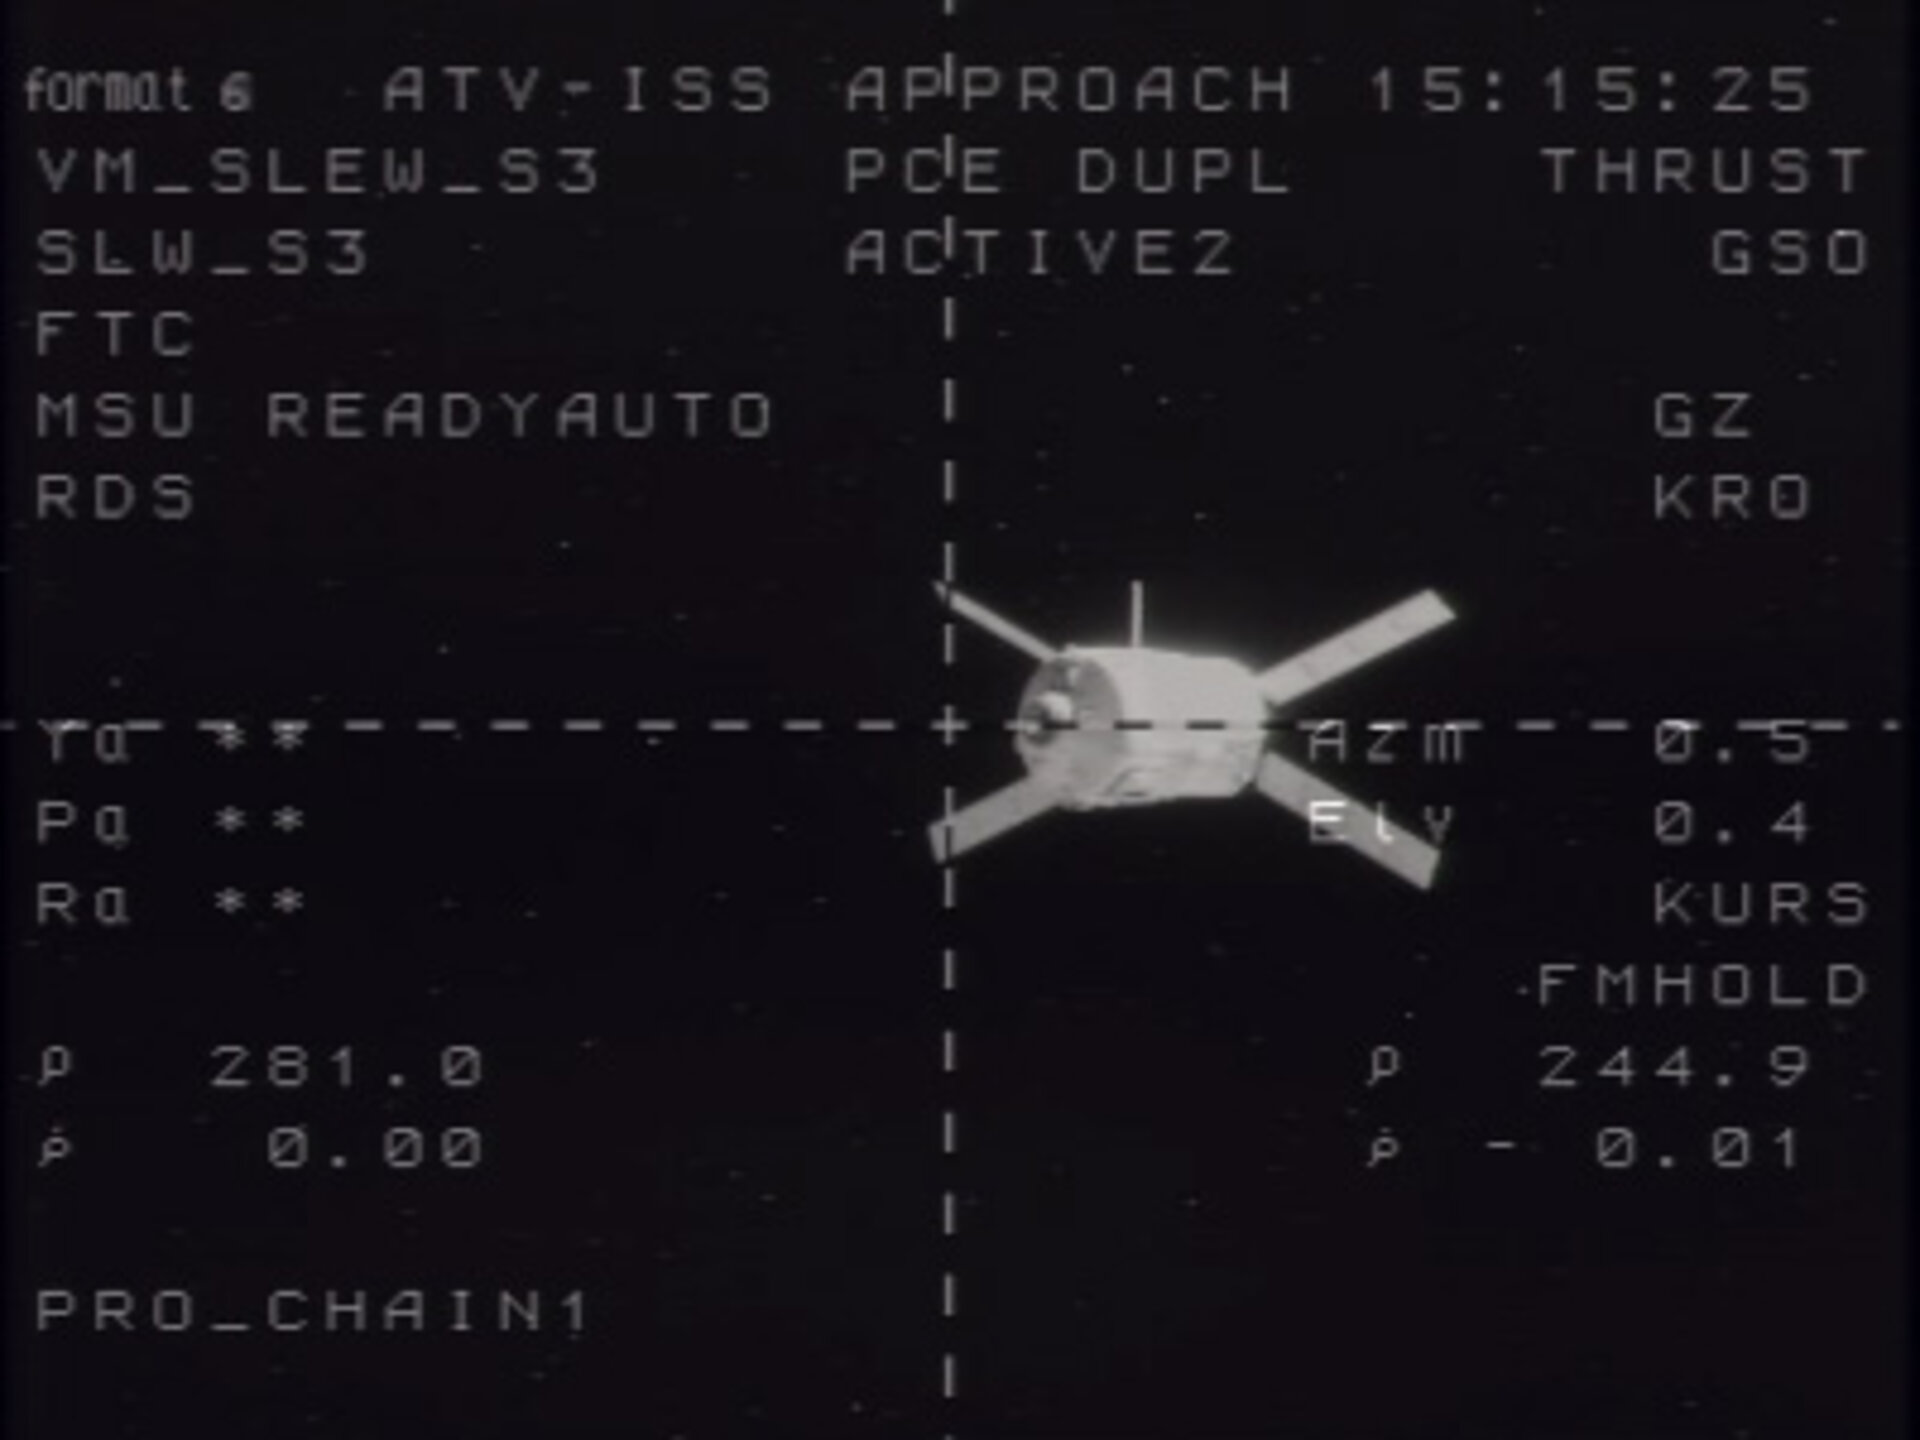 Jules Verne ATV approaches the ISS during the second of two demonstration days prior to docking